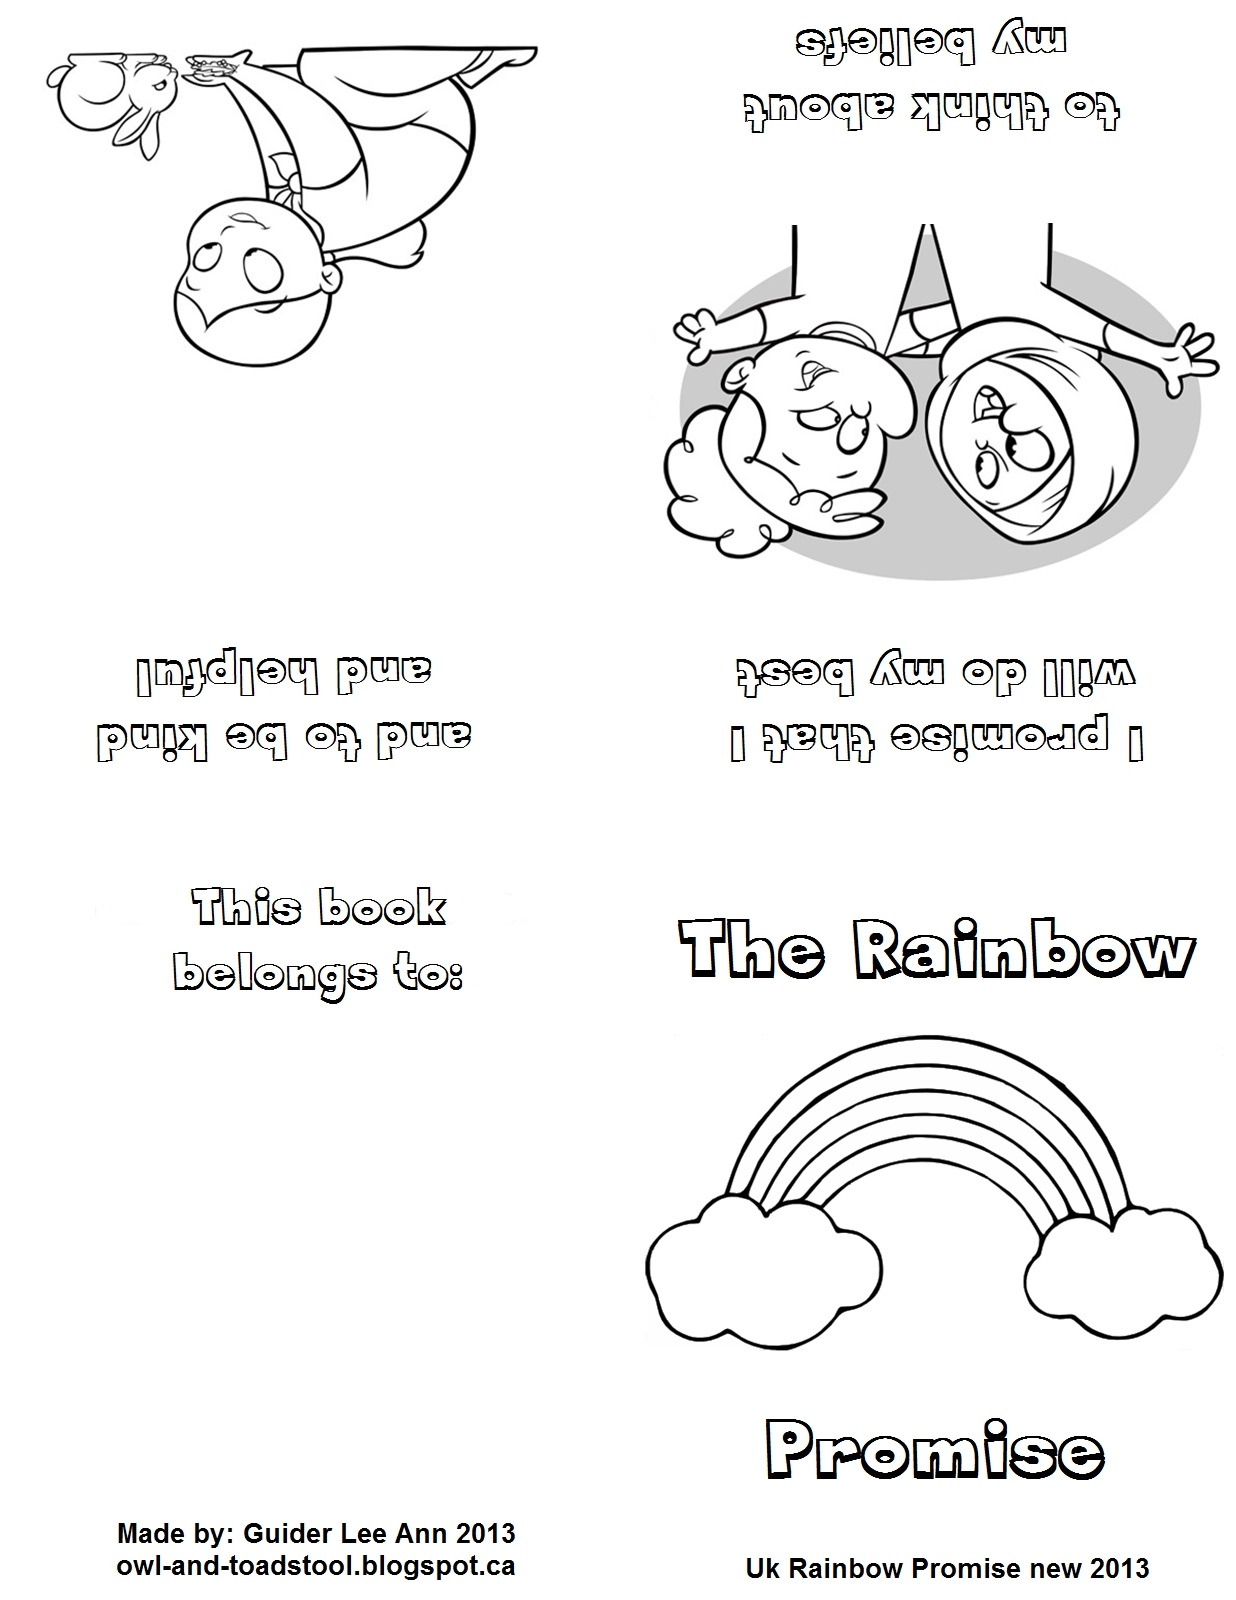 girl guide coloring pages - owl toadstool girlguiding uk new promise mini books